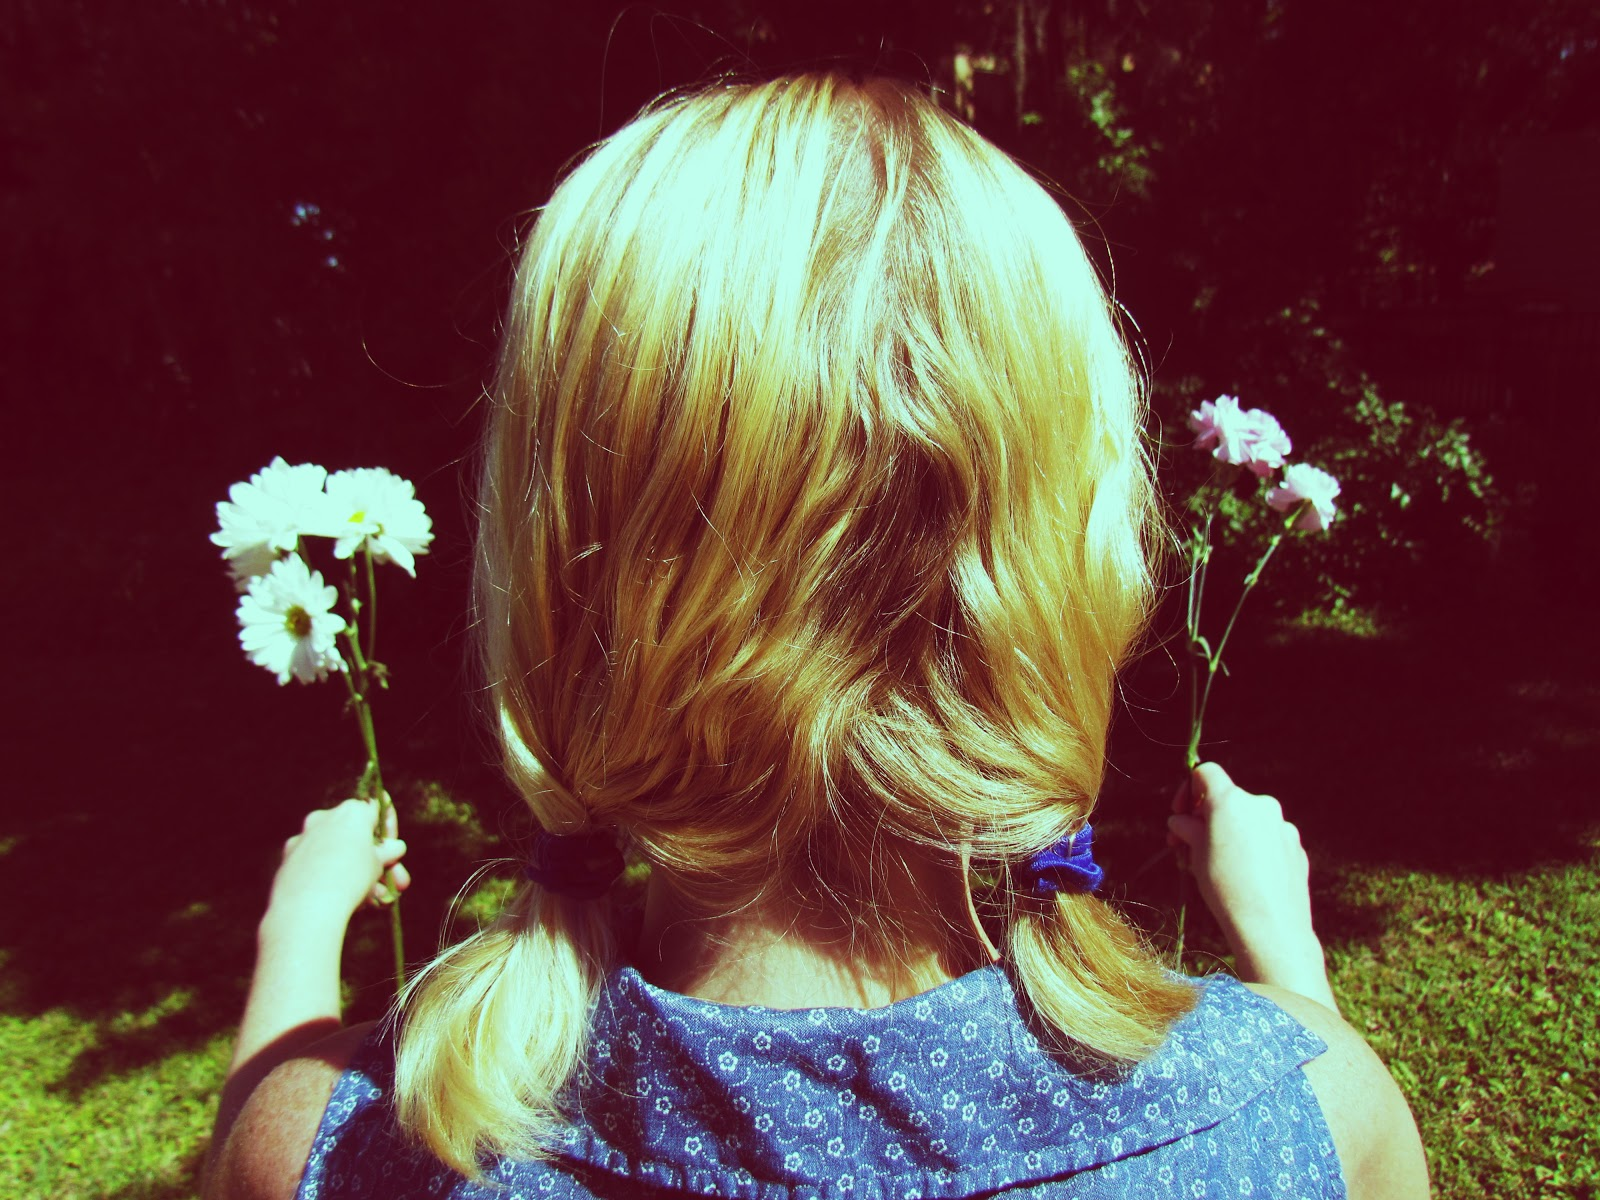 Blonde Woman Wearing Pigtails and Holding a Flower in Each Hand in the Backdrop of Nature in the Summertime in Florida